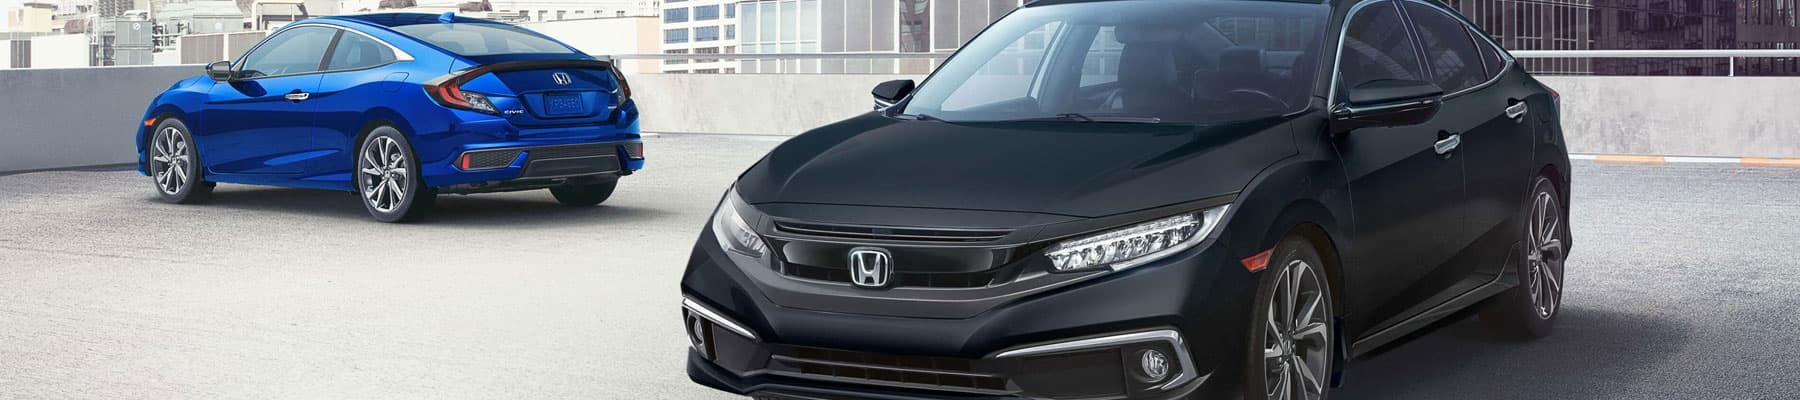 Honda Civic Coupe Featured Image